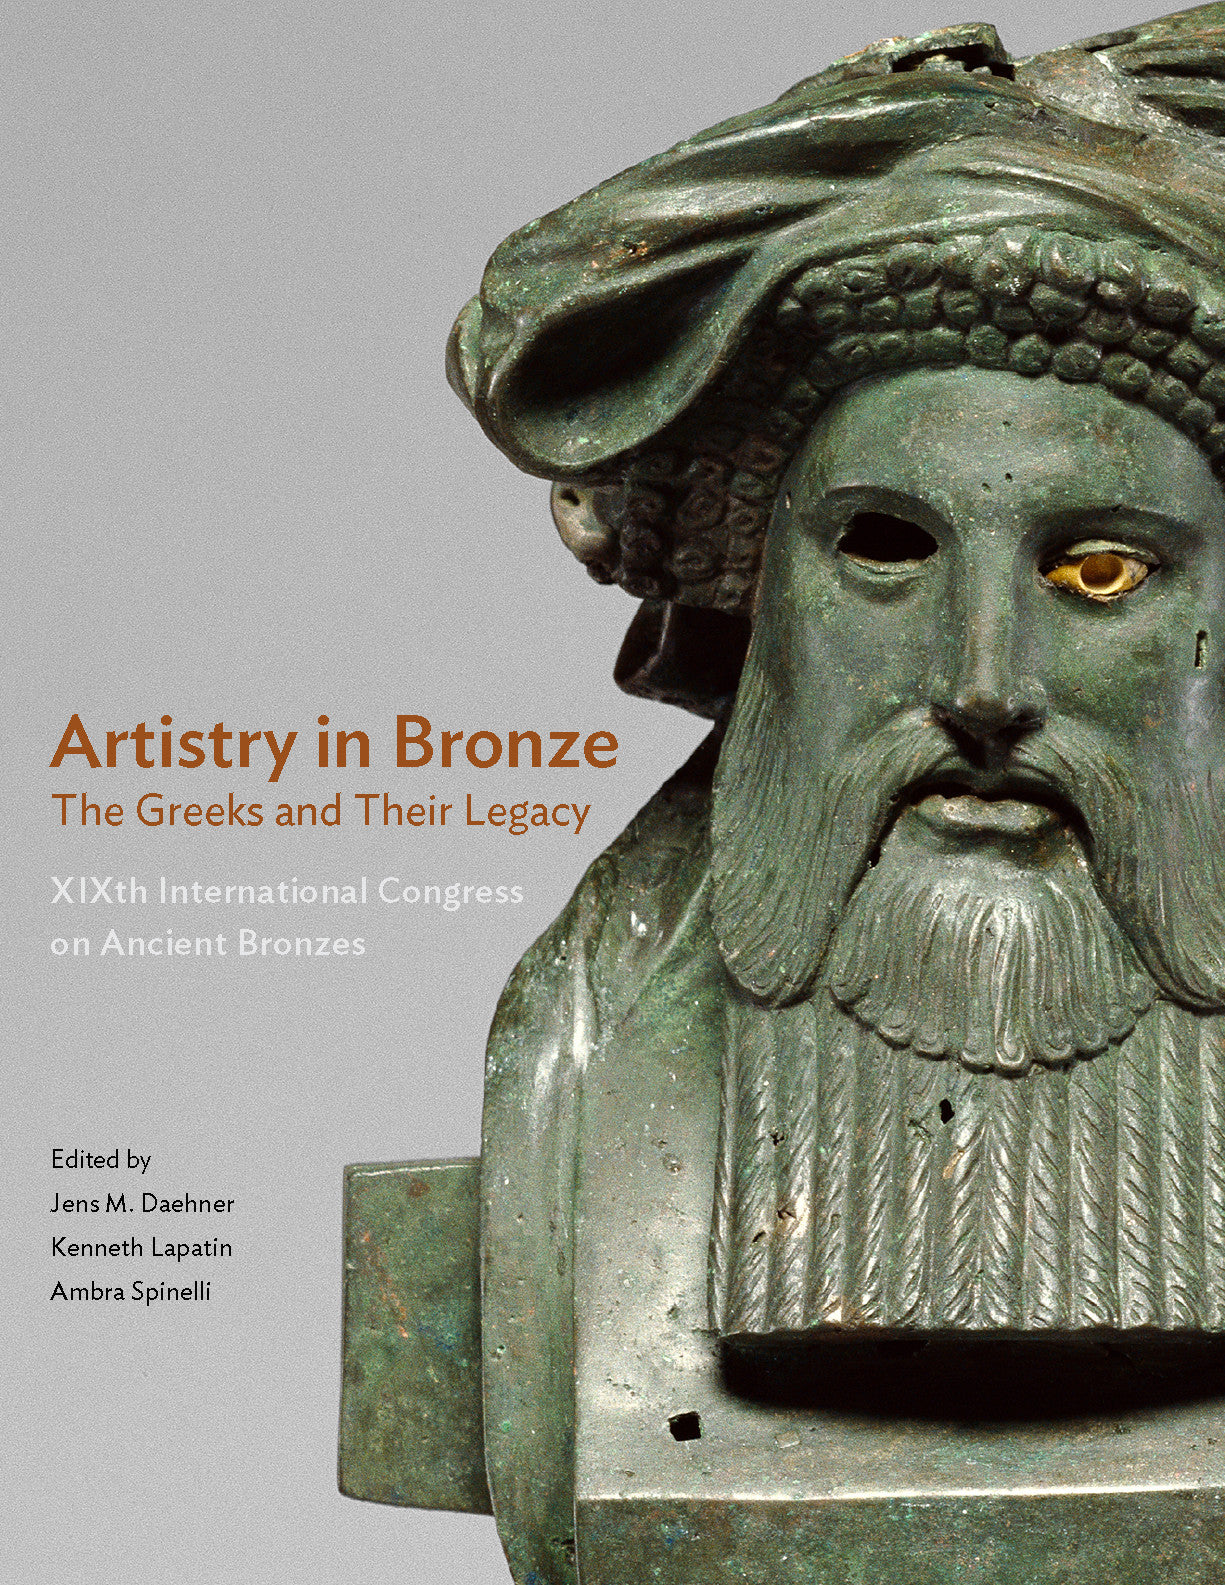 Artistry in Bronze: The Greeks and Their Legacy <br>XIXth International Congress on Ancient Bronzes